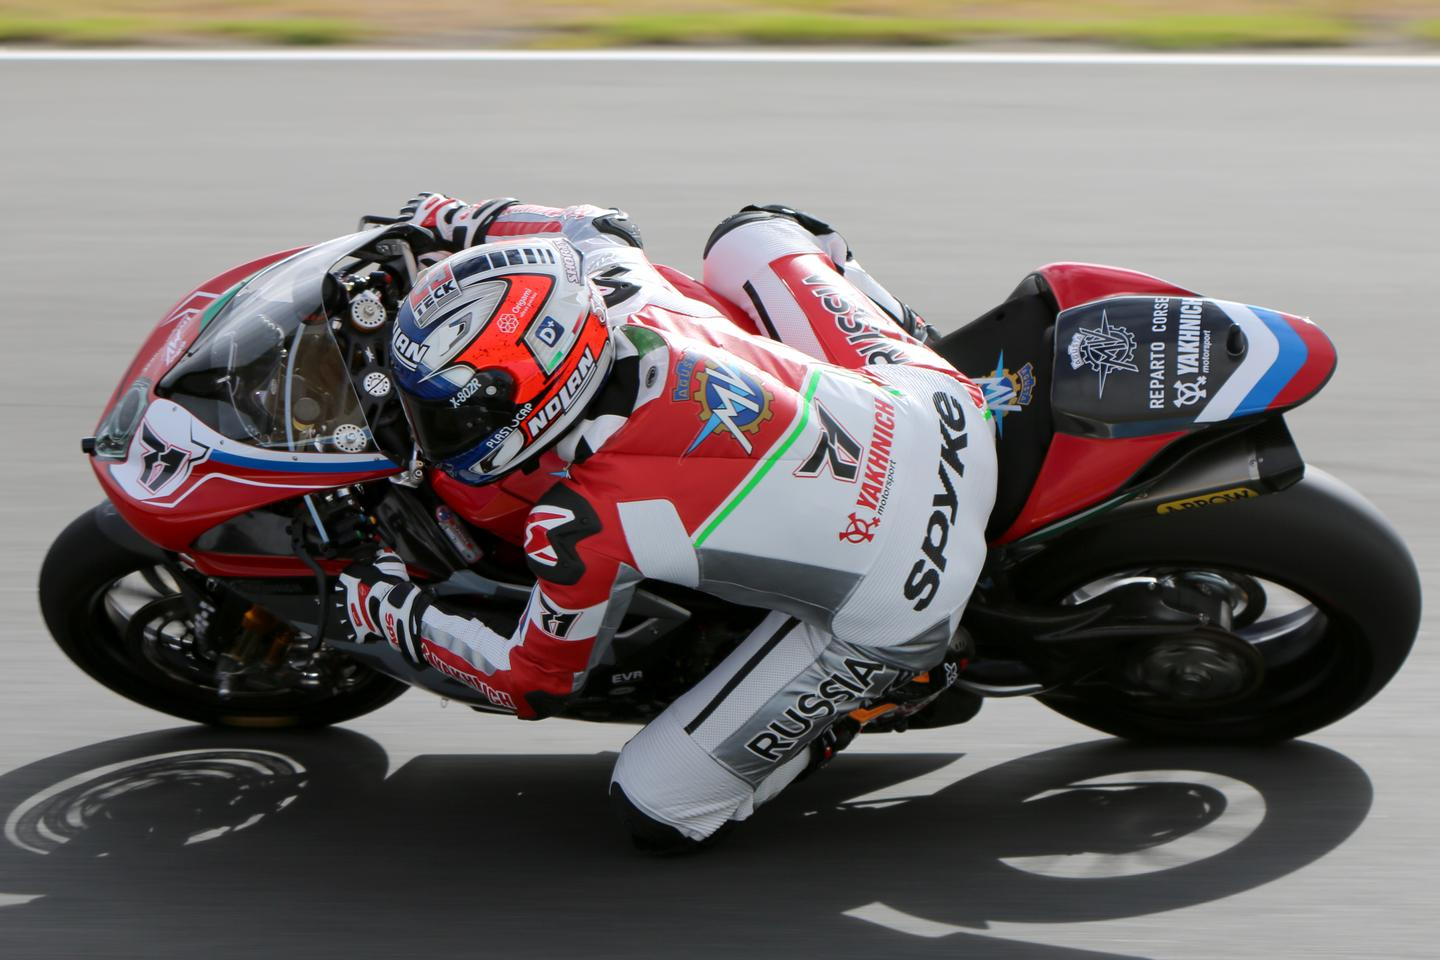 After Porn Ends Reparto pictorial: round 1 world superbike championships - phillip